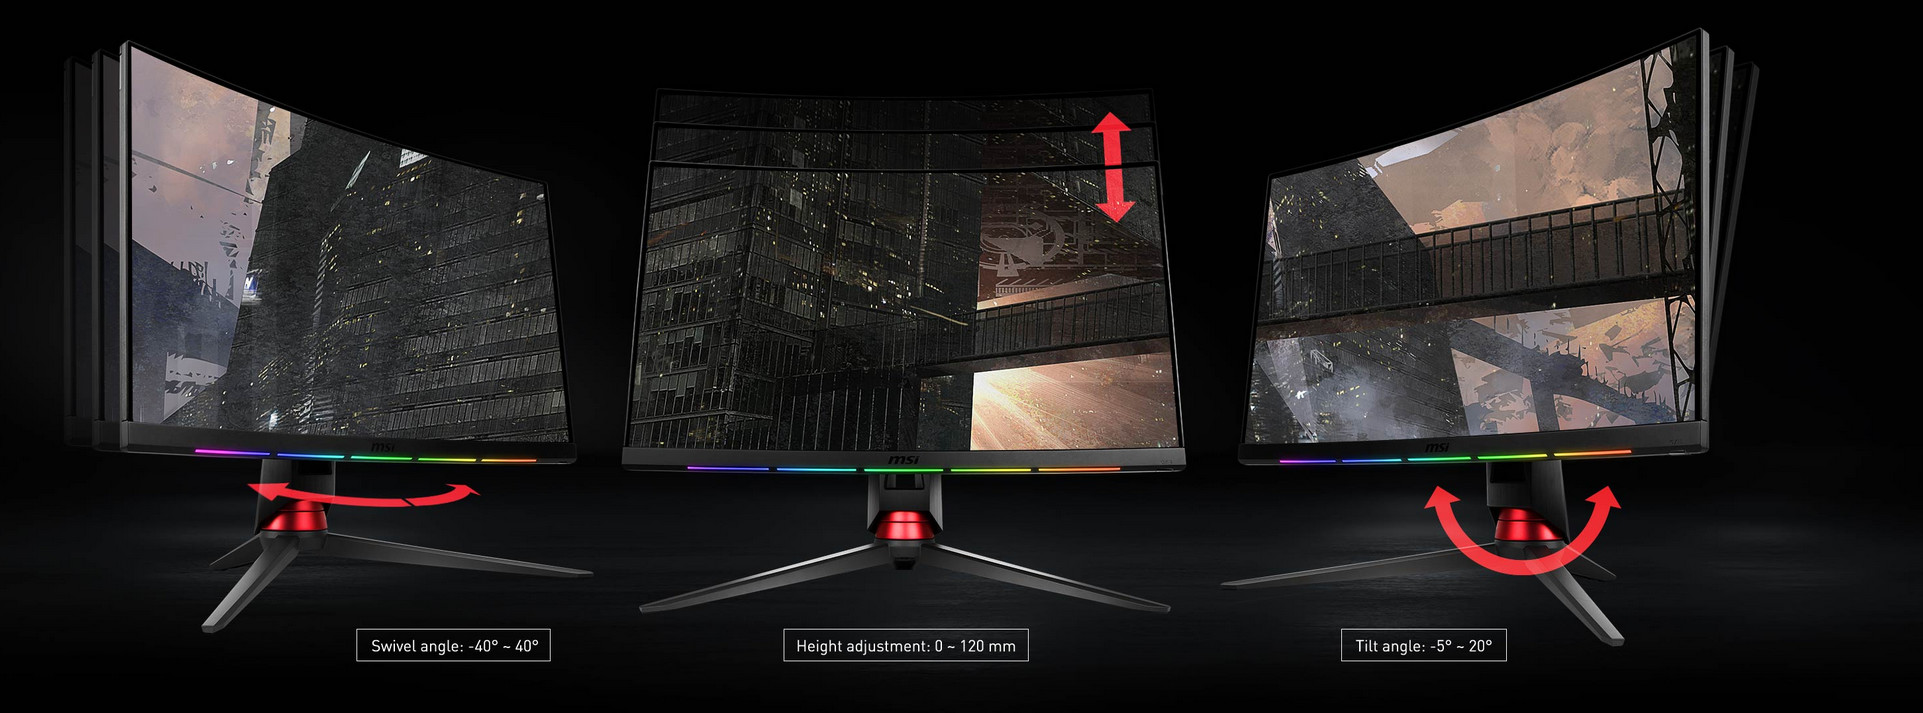 MSI Intros the OPTIX MPG27CQ Monitor 4